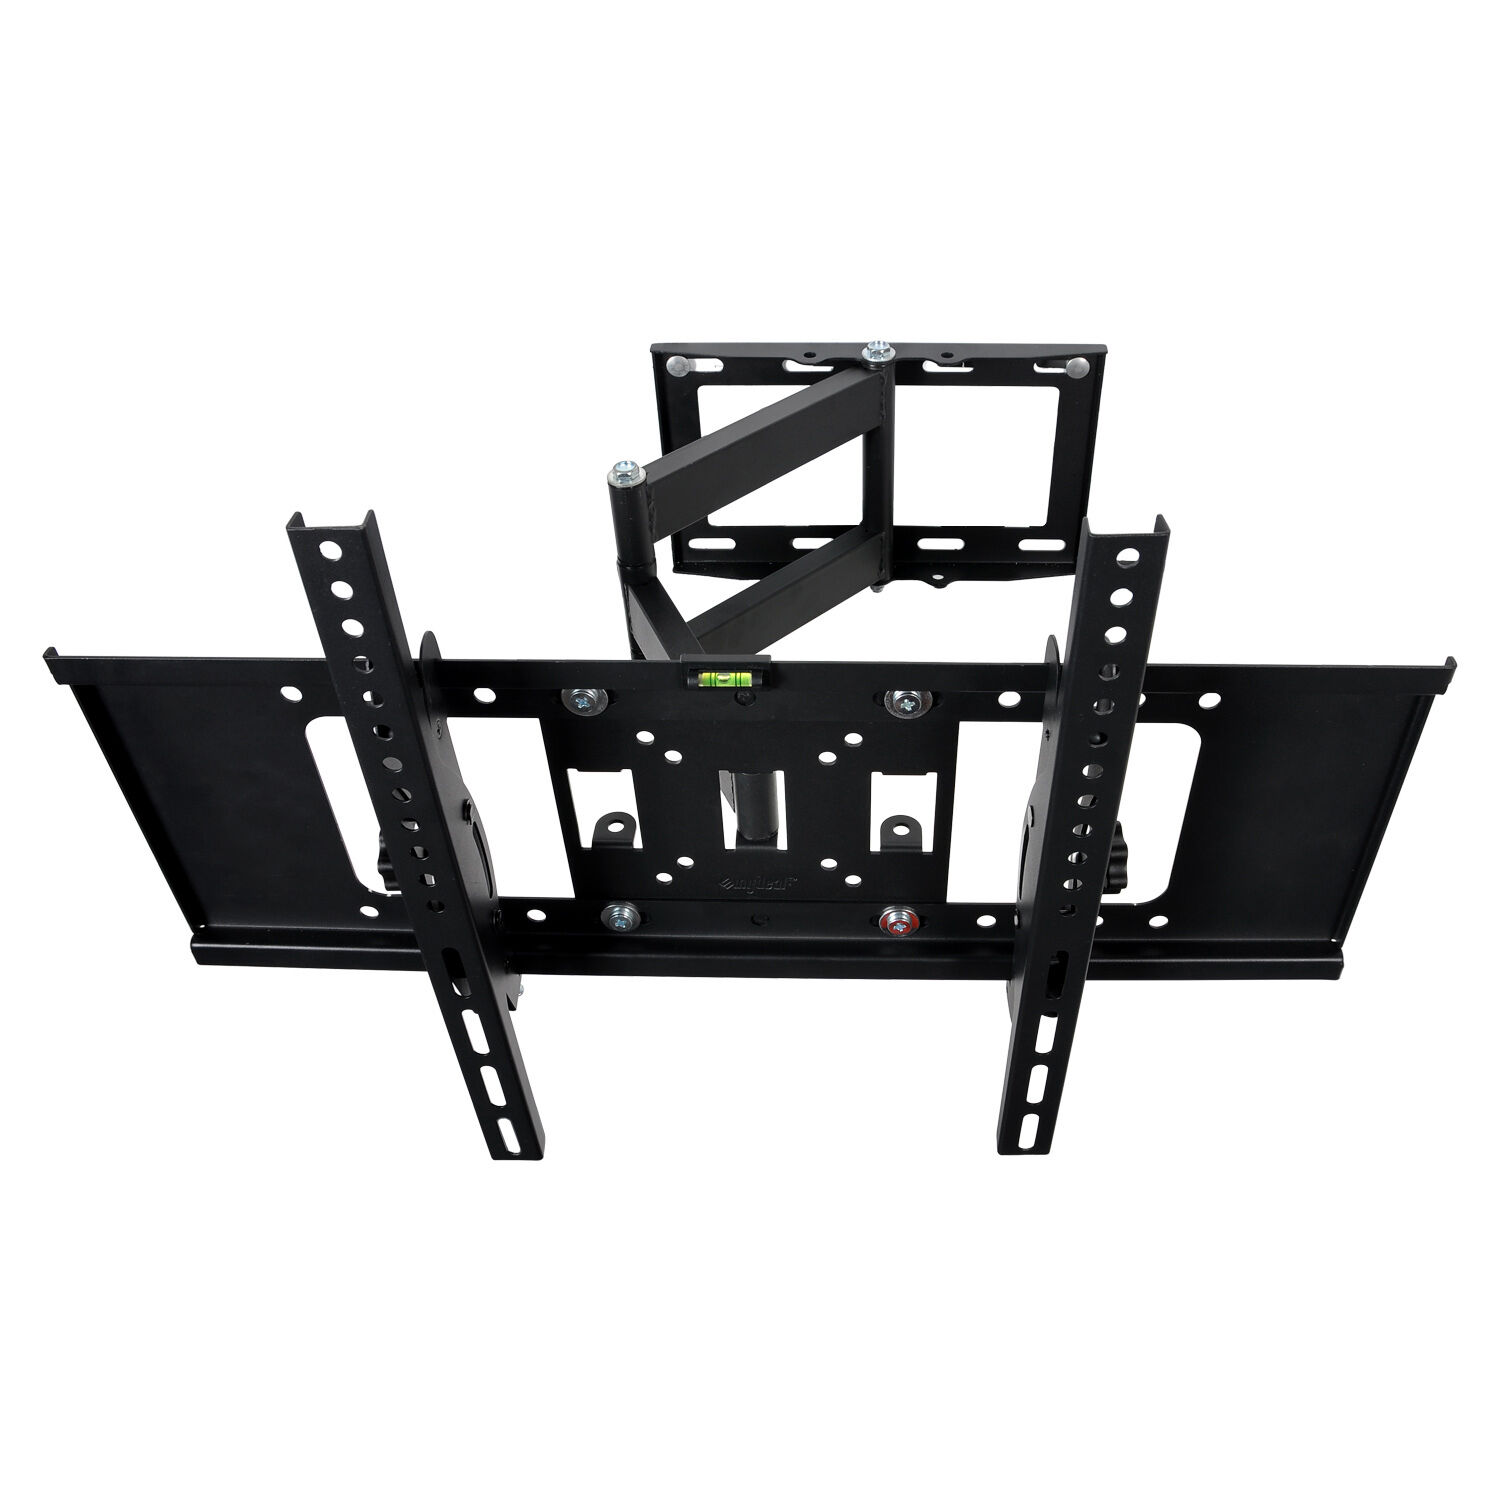 Support mural tv ecran muraux pour samsung sony 26 30 38 - Support mural tv 40 ...